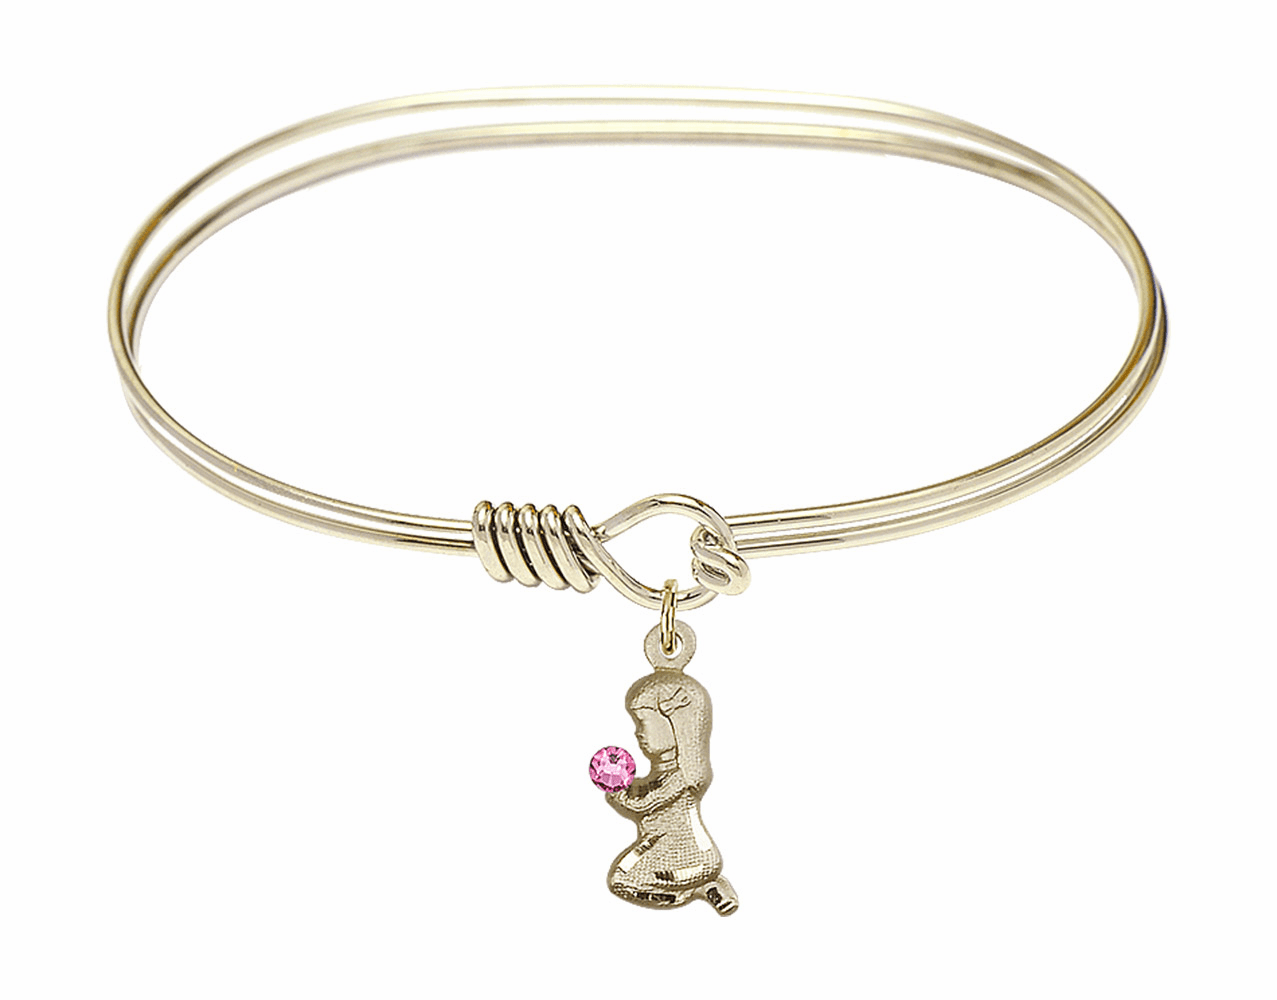 Round Eye Hook Bangle Bracelet w/Pink Crystal Praying Girl by Bliss Mfg